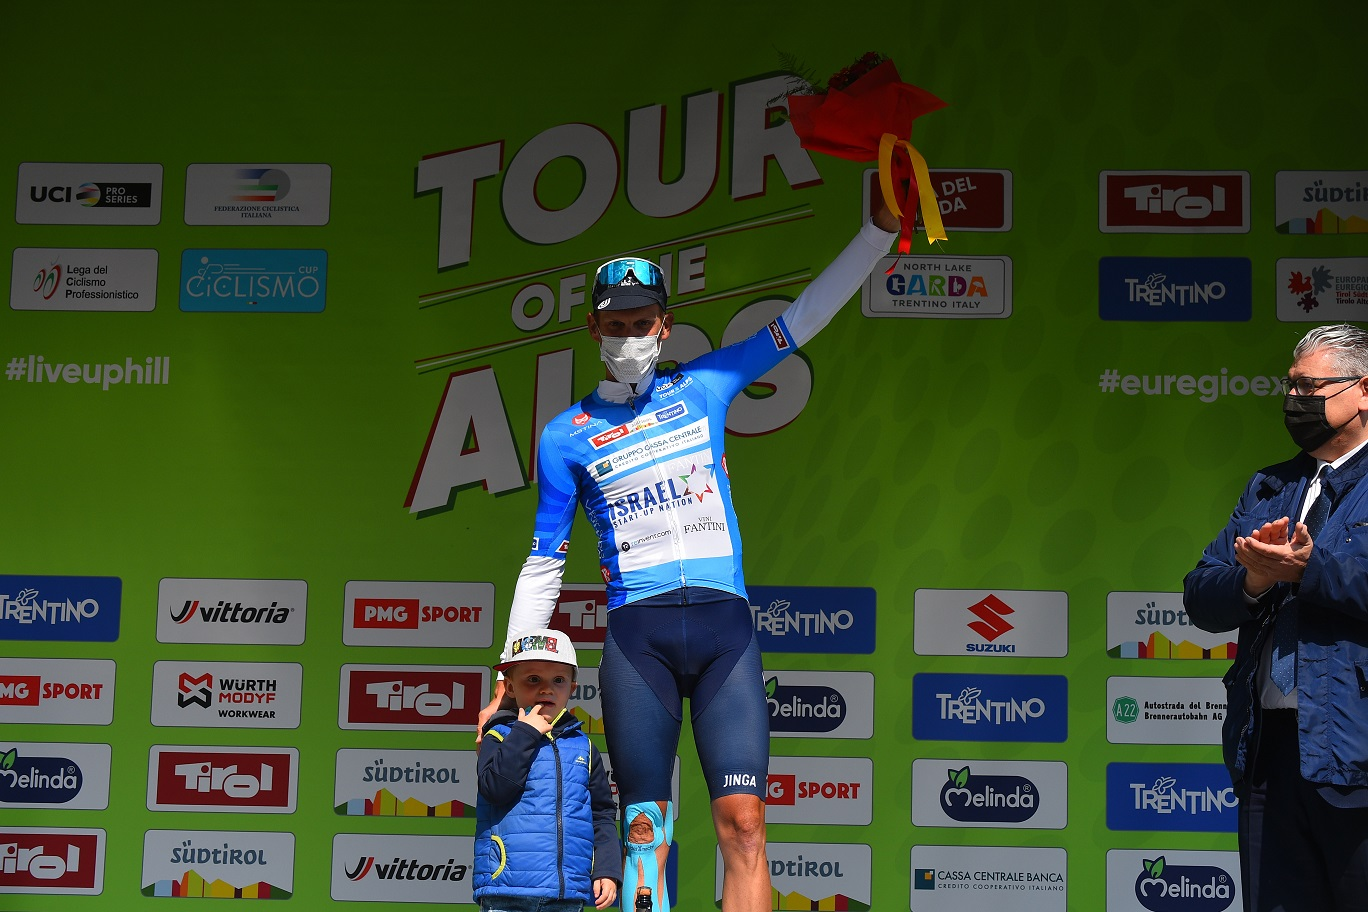 De Marchi takes third place and the KOM jersey